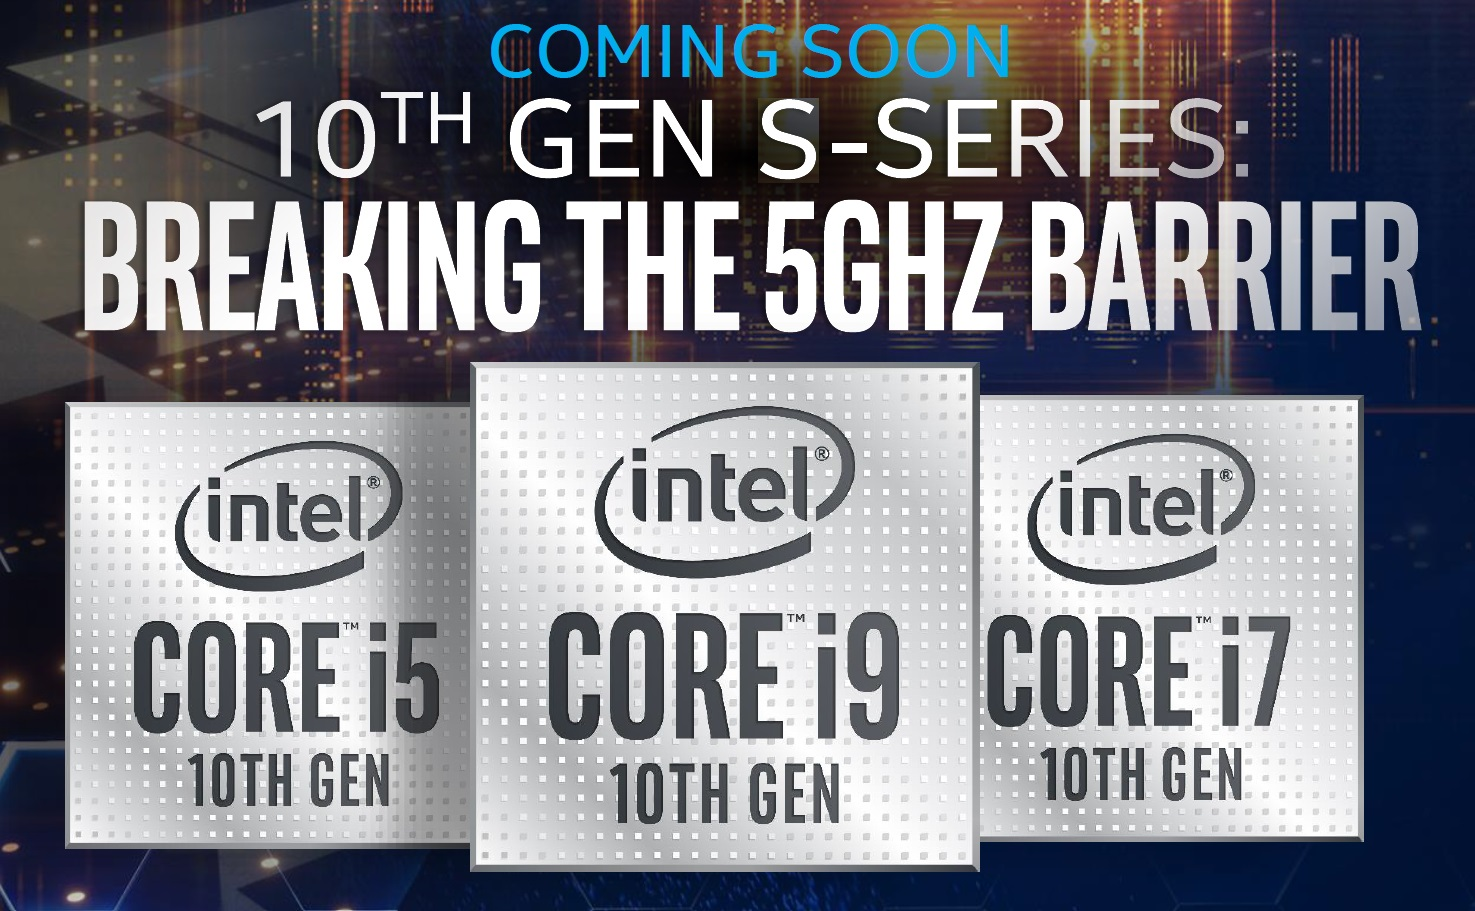 Photo of Intel's 10th Gen Core i9-10980HK Mobile CPU Might be Slower than its 9th Gen Predecessor